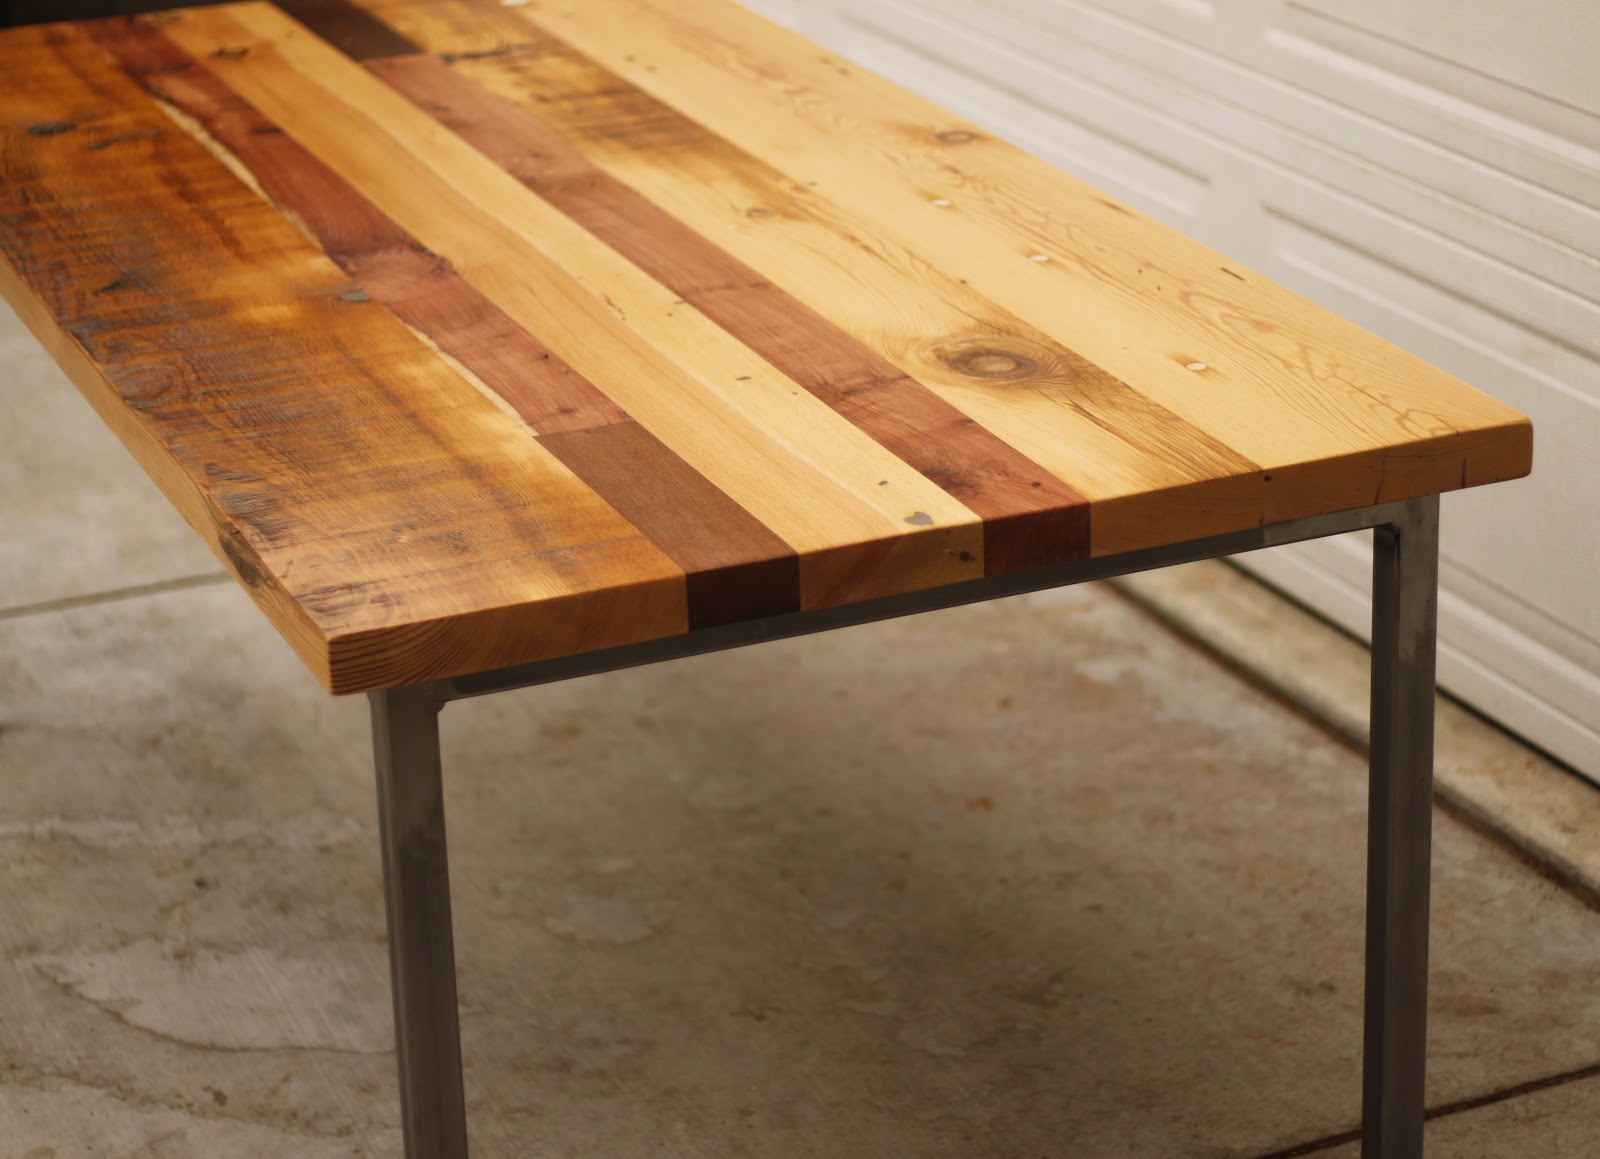 Arbor exchange reclaimed wood furniture patchwork table for Wood table top designs